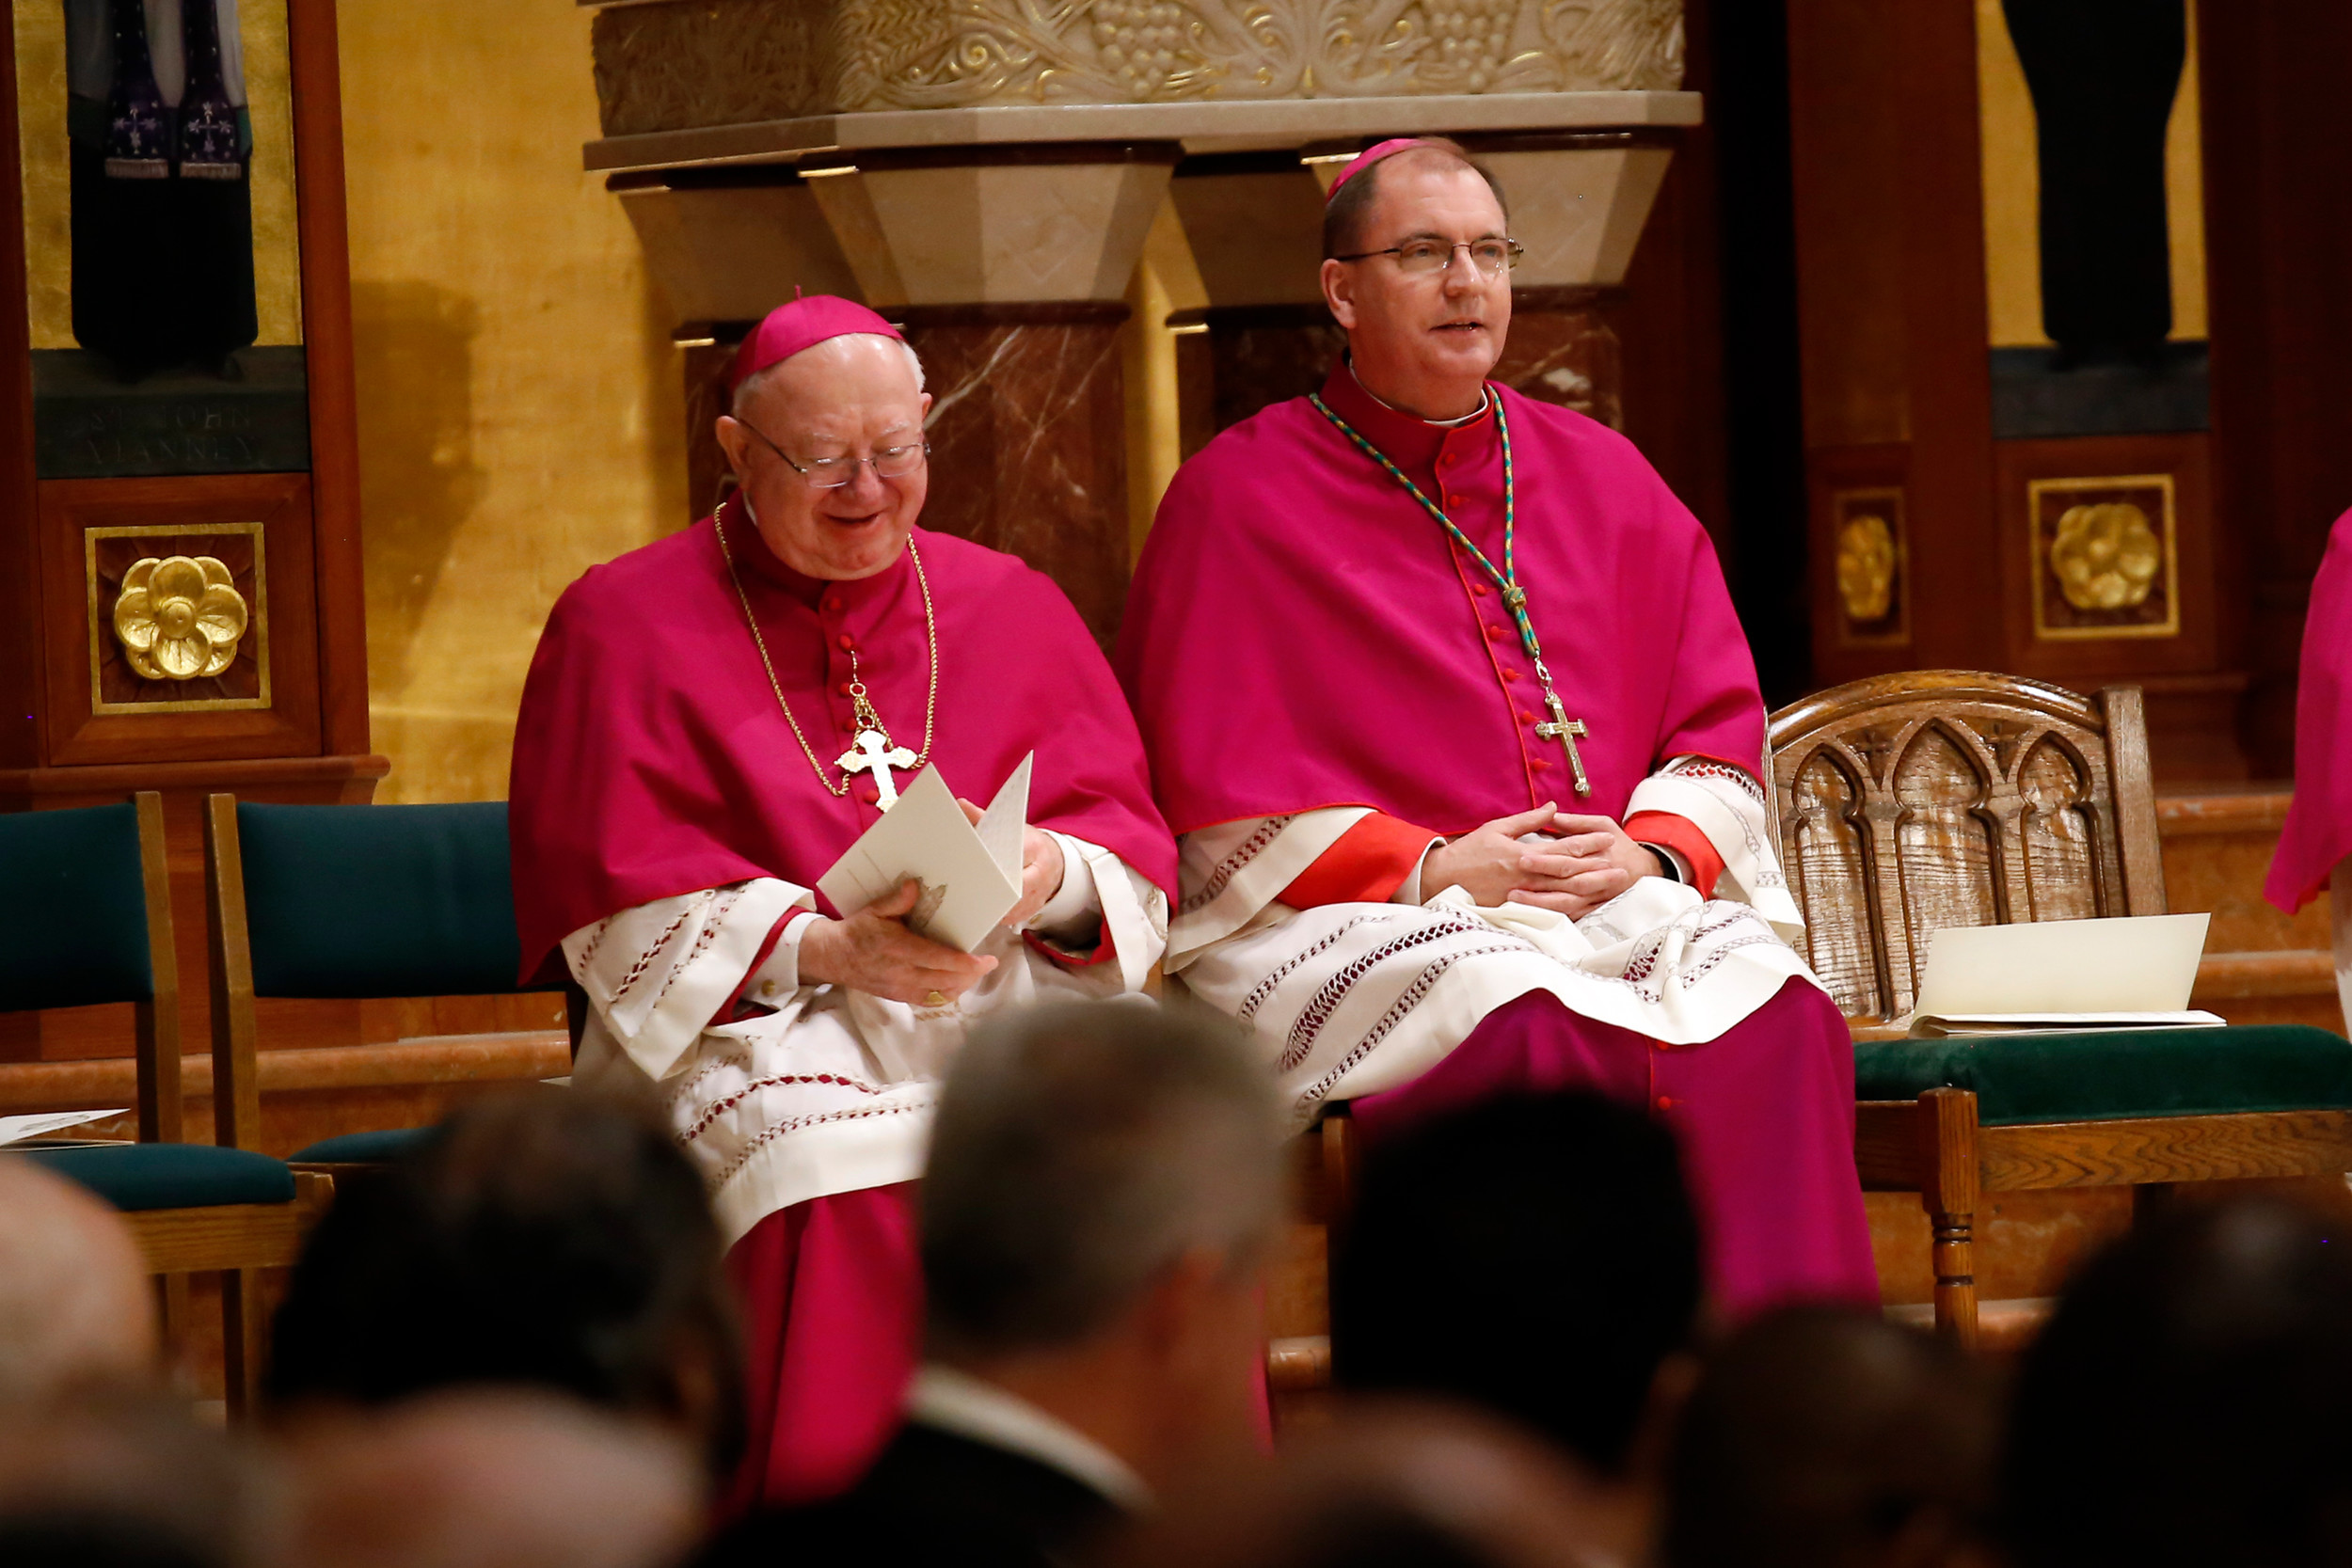 Bishop John Barres, right, was recently installed as spiritual leader of the Diocese of Rockville Centre. He succeeds Bishop William Murphy, left.